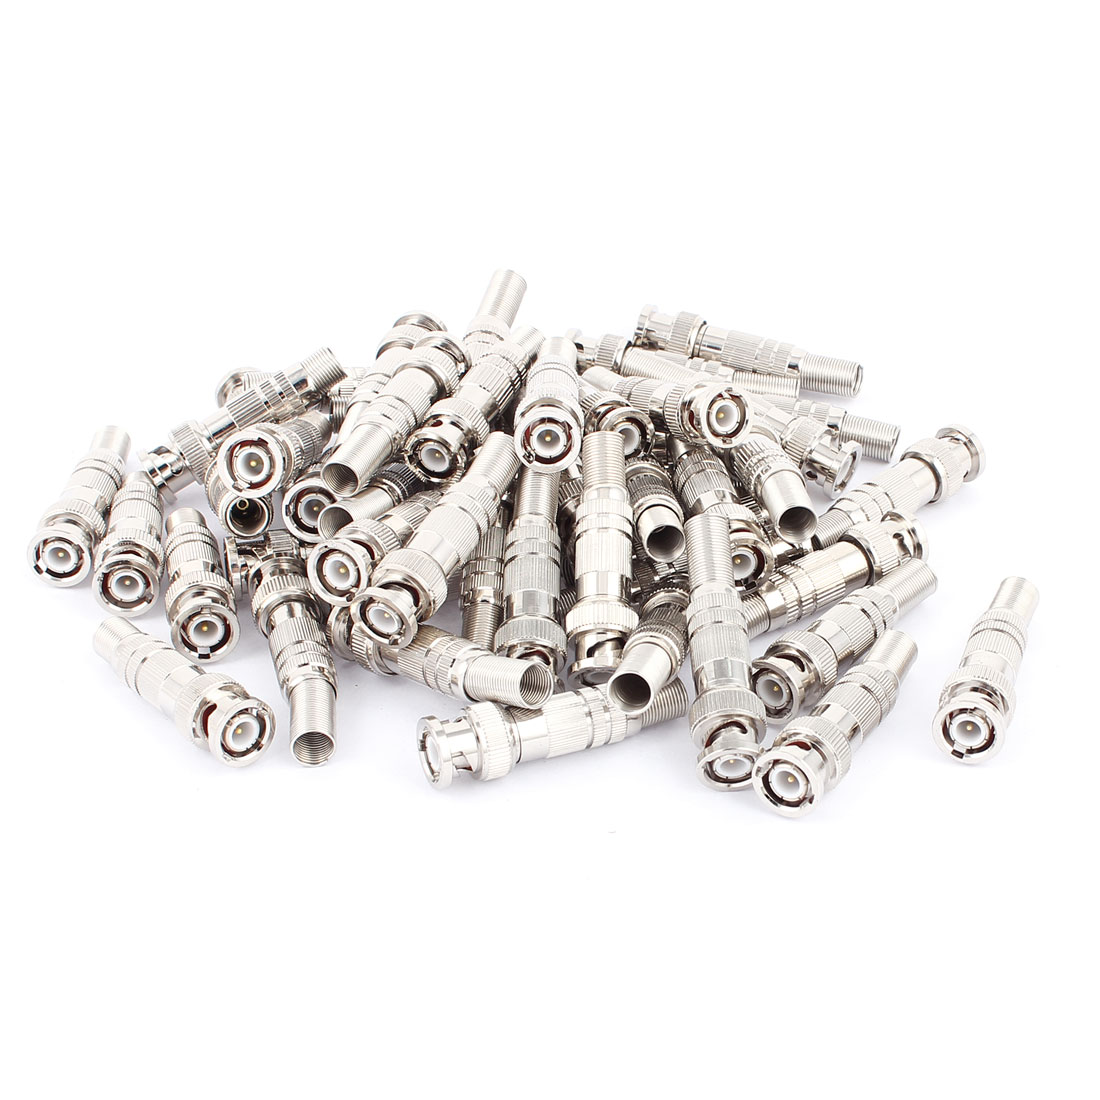 50Pcs Twist Spring Copper-plated BNC Male Adapter Connector for CCTV Camera